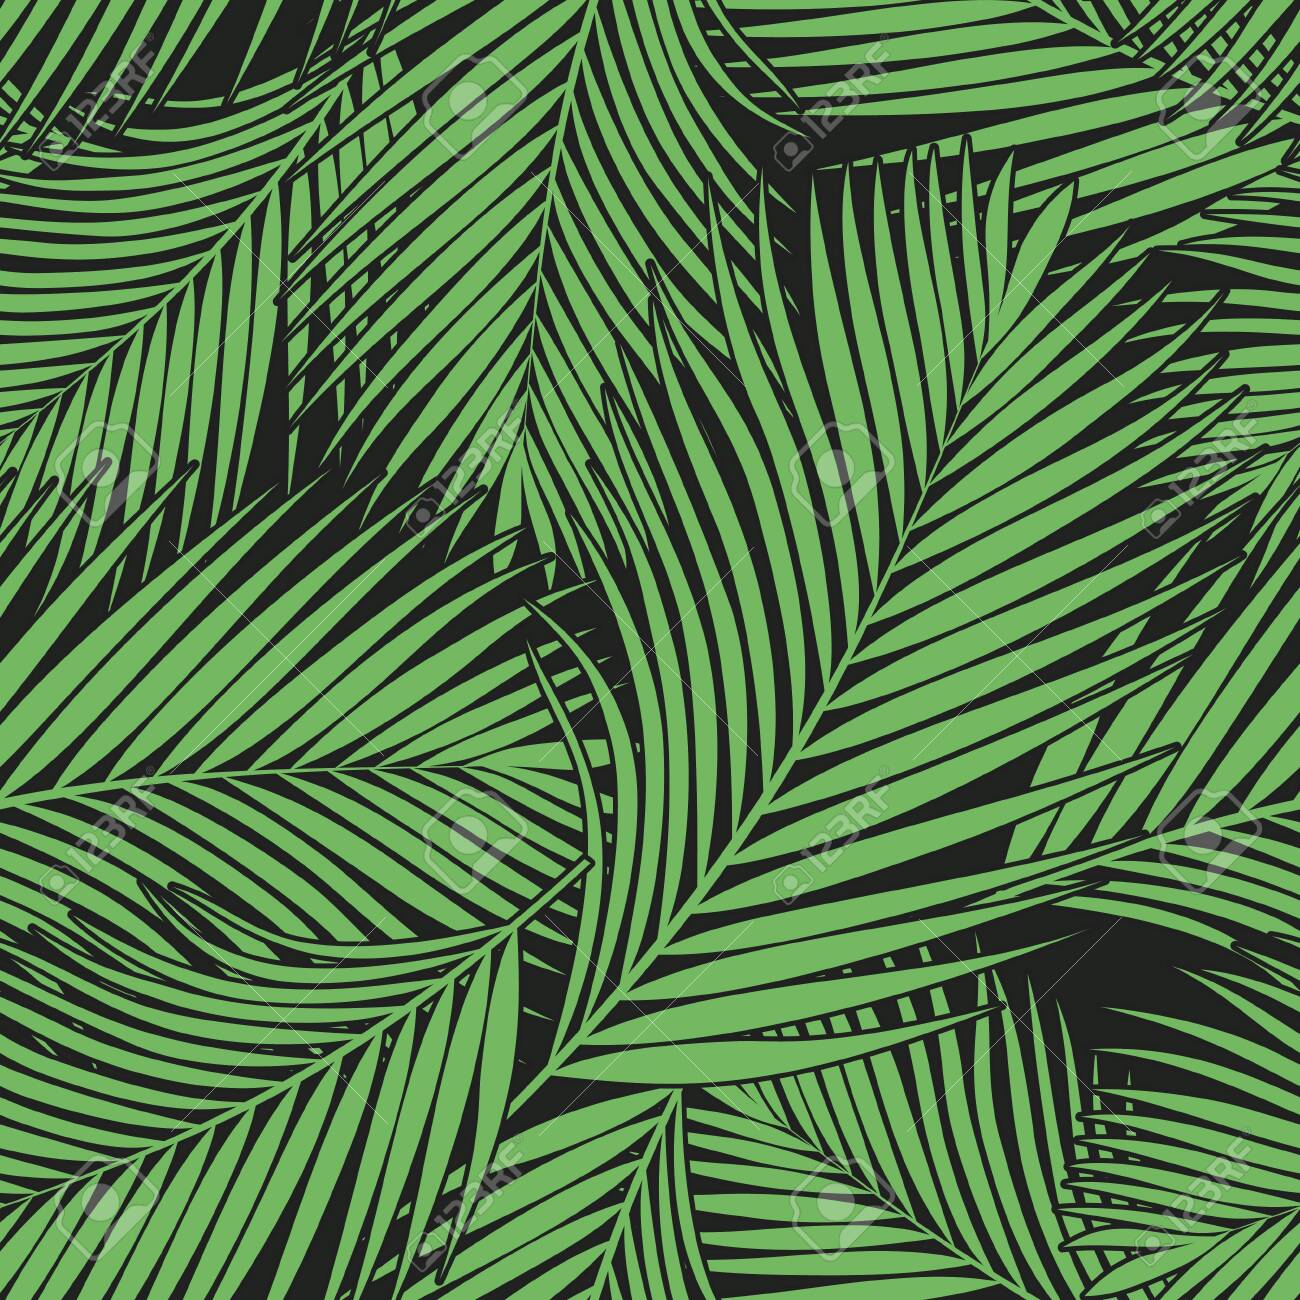 Green tropical palm leaves texture on dark backdrop. Seamless vector background. Botanical illustration - 142380608